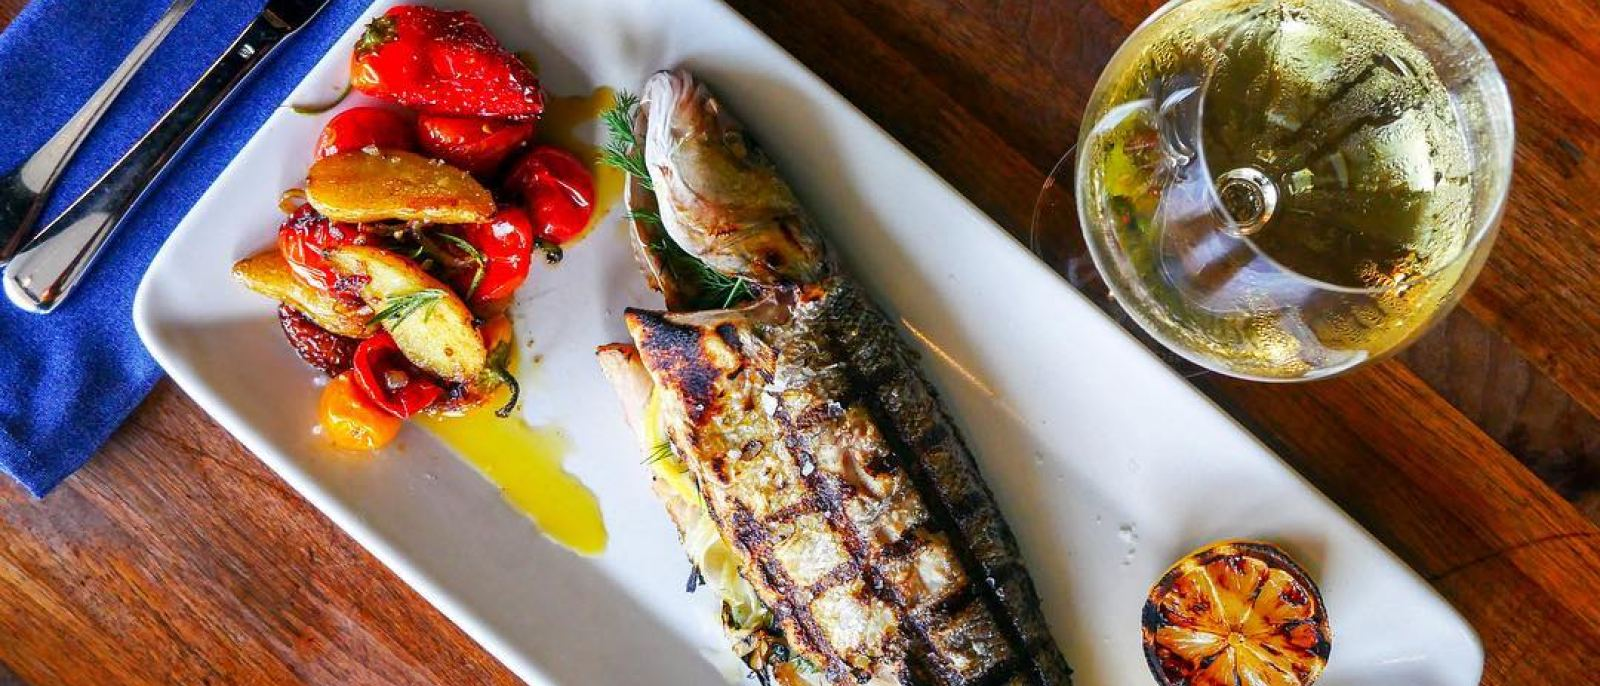 Whole grilled branzino at Good Measure in Atwater Village